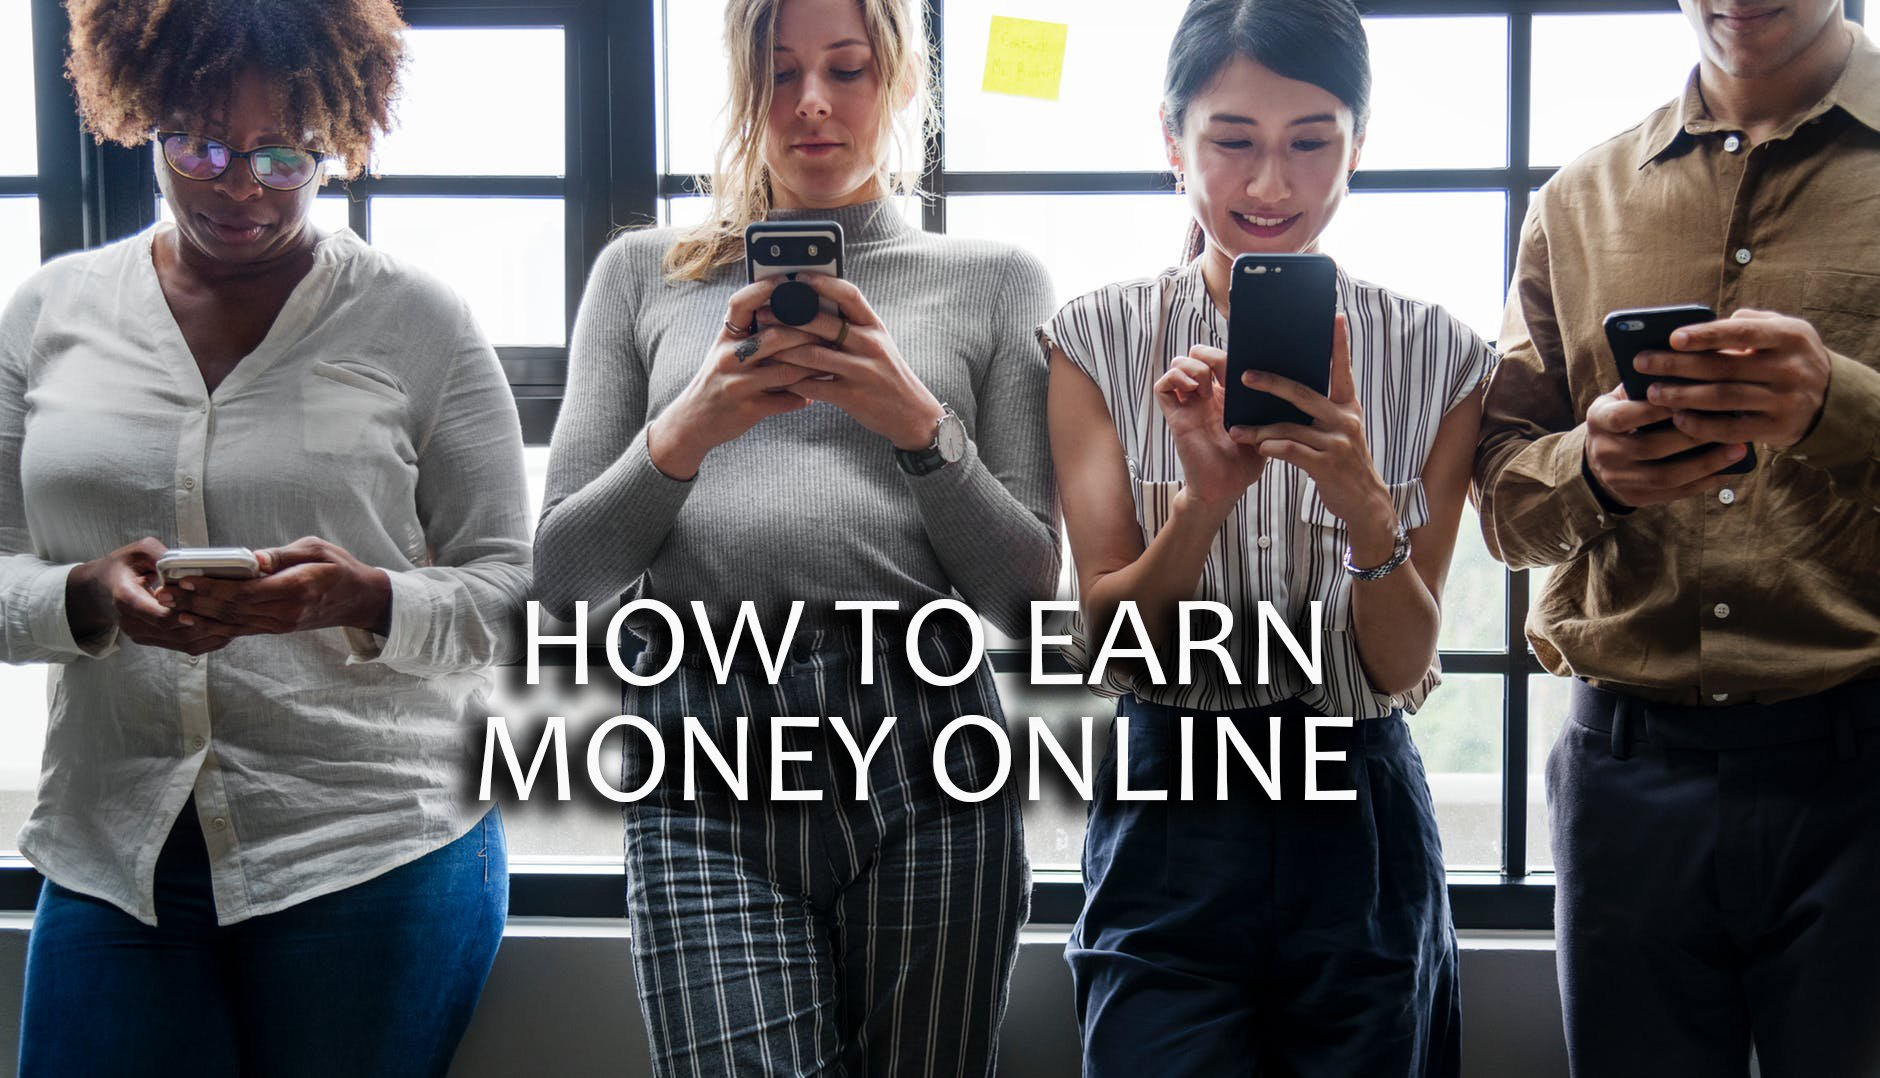 HOW TO MAKE MONEY ONLINE 2019